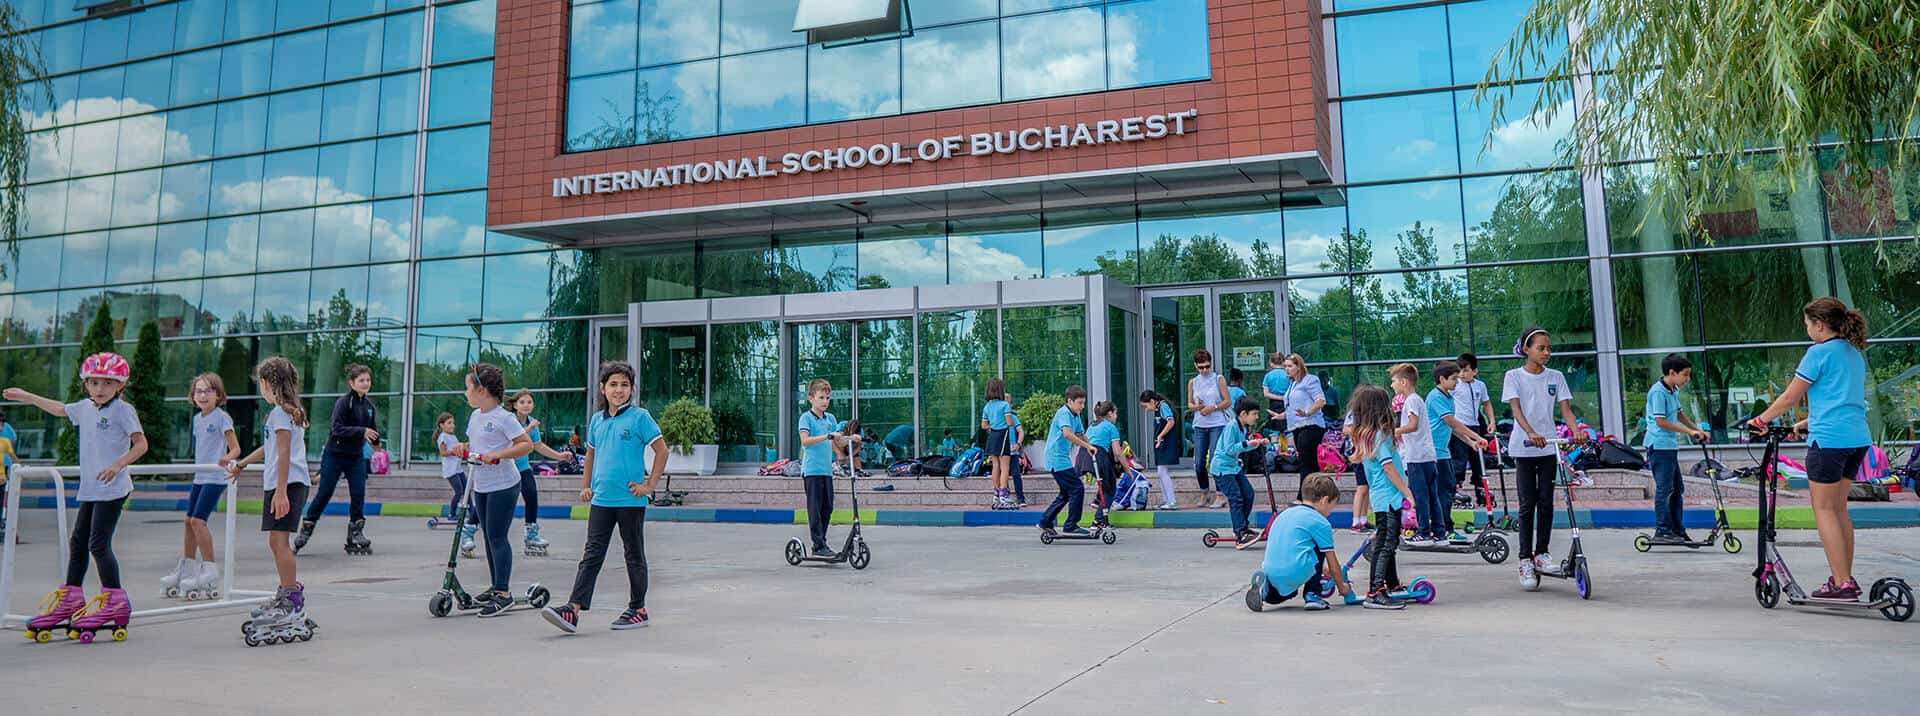 International School of Bucharest Grants Full and Partial Scholarships for the School Year 2020/2021